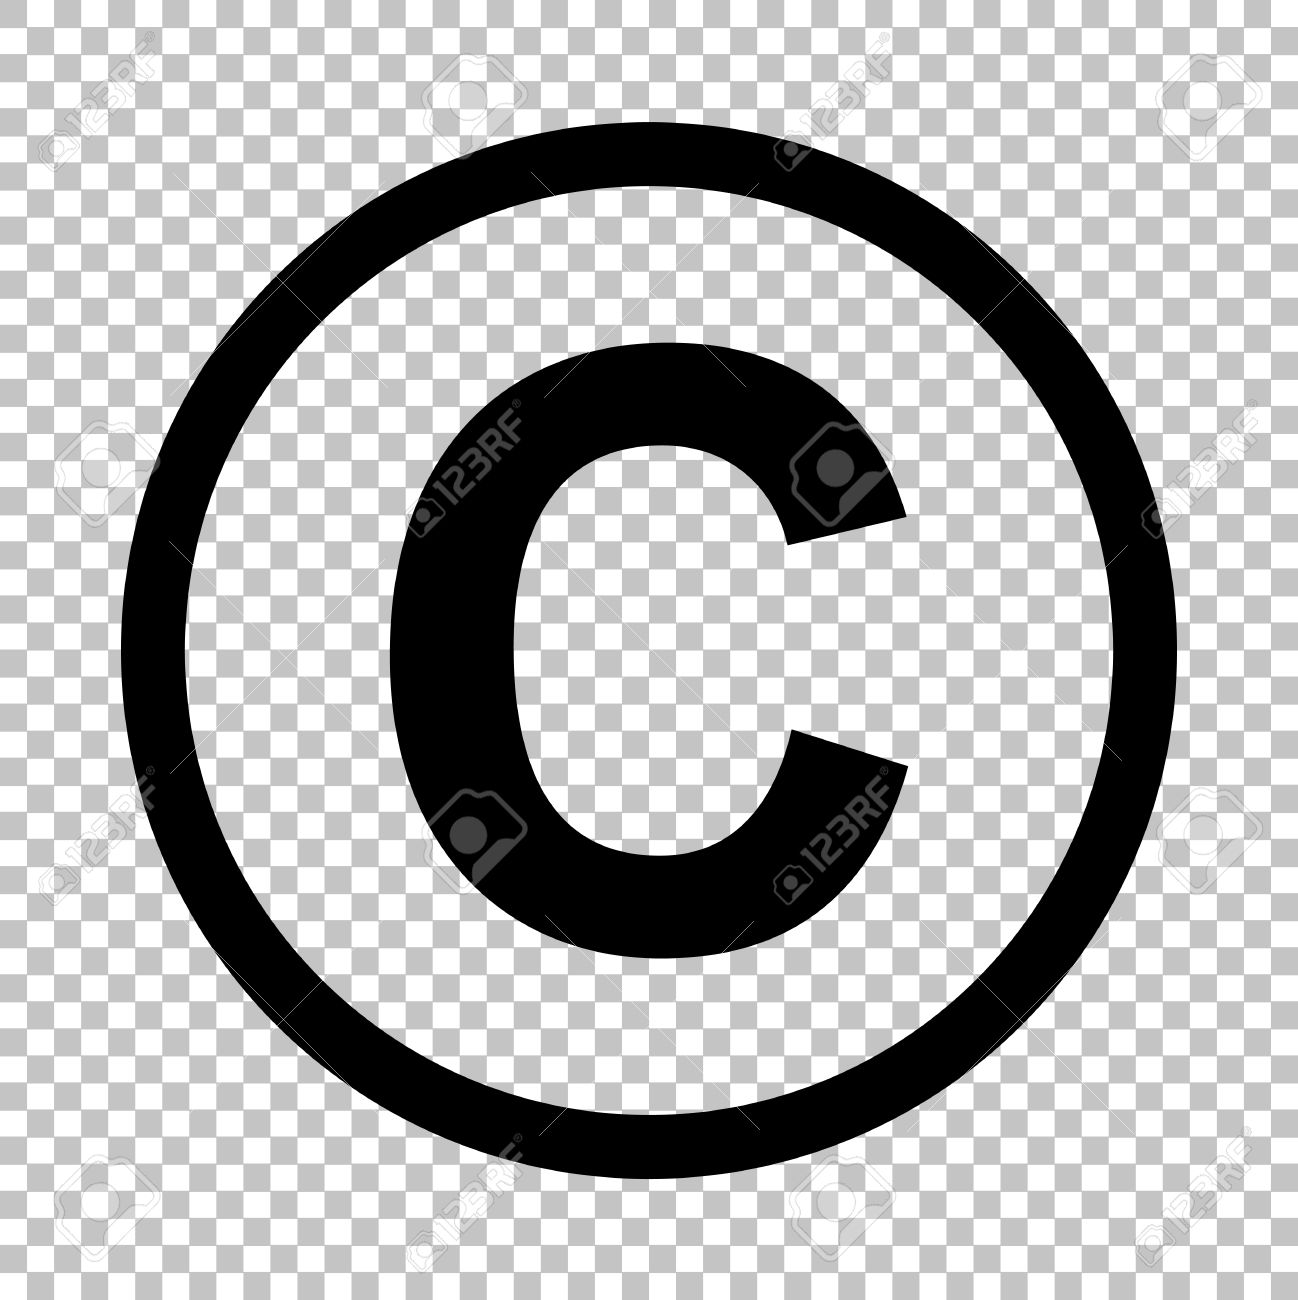 copyright sign flat style icon on transparent background royalty Copyright Warning copyright sign flat style icon on transparent background stock vector 52180934